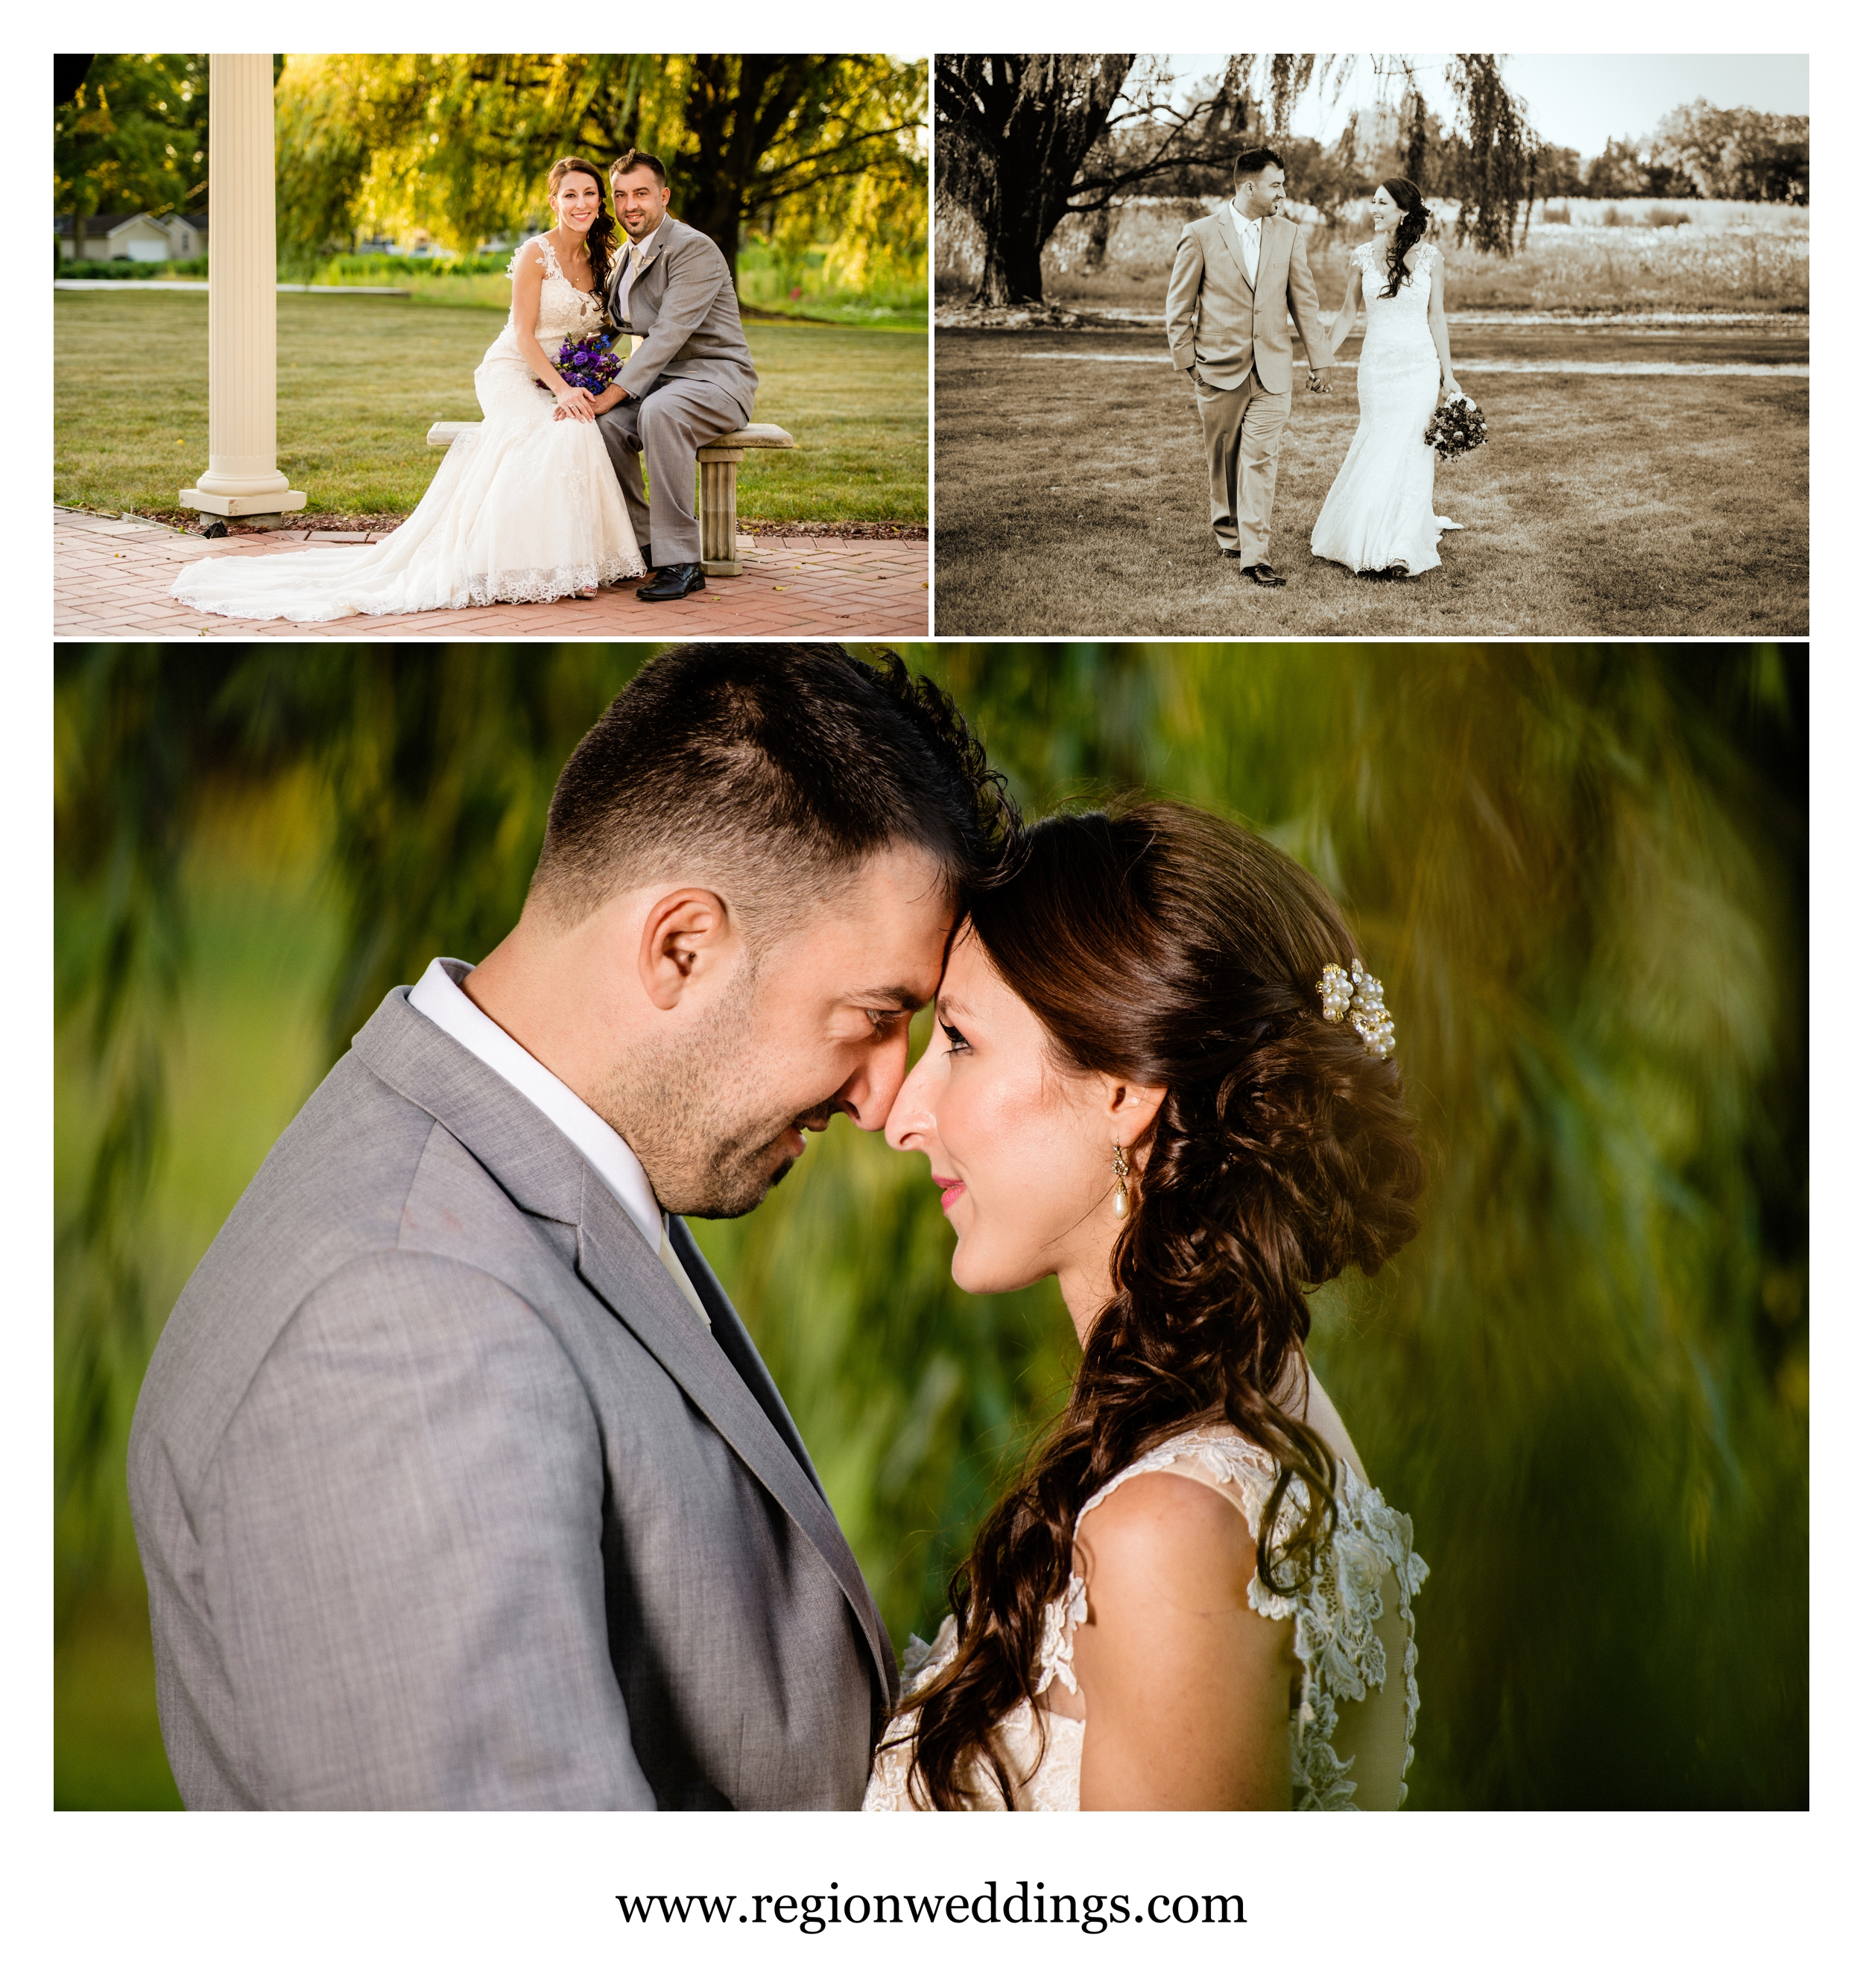 The bride and groom together in some romantic wedding photos after their September wedding.